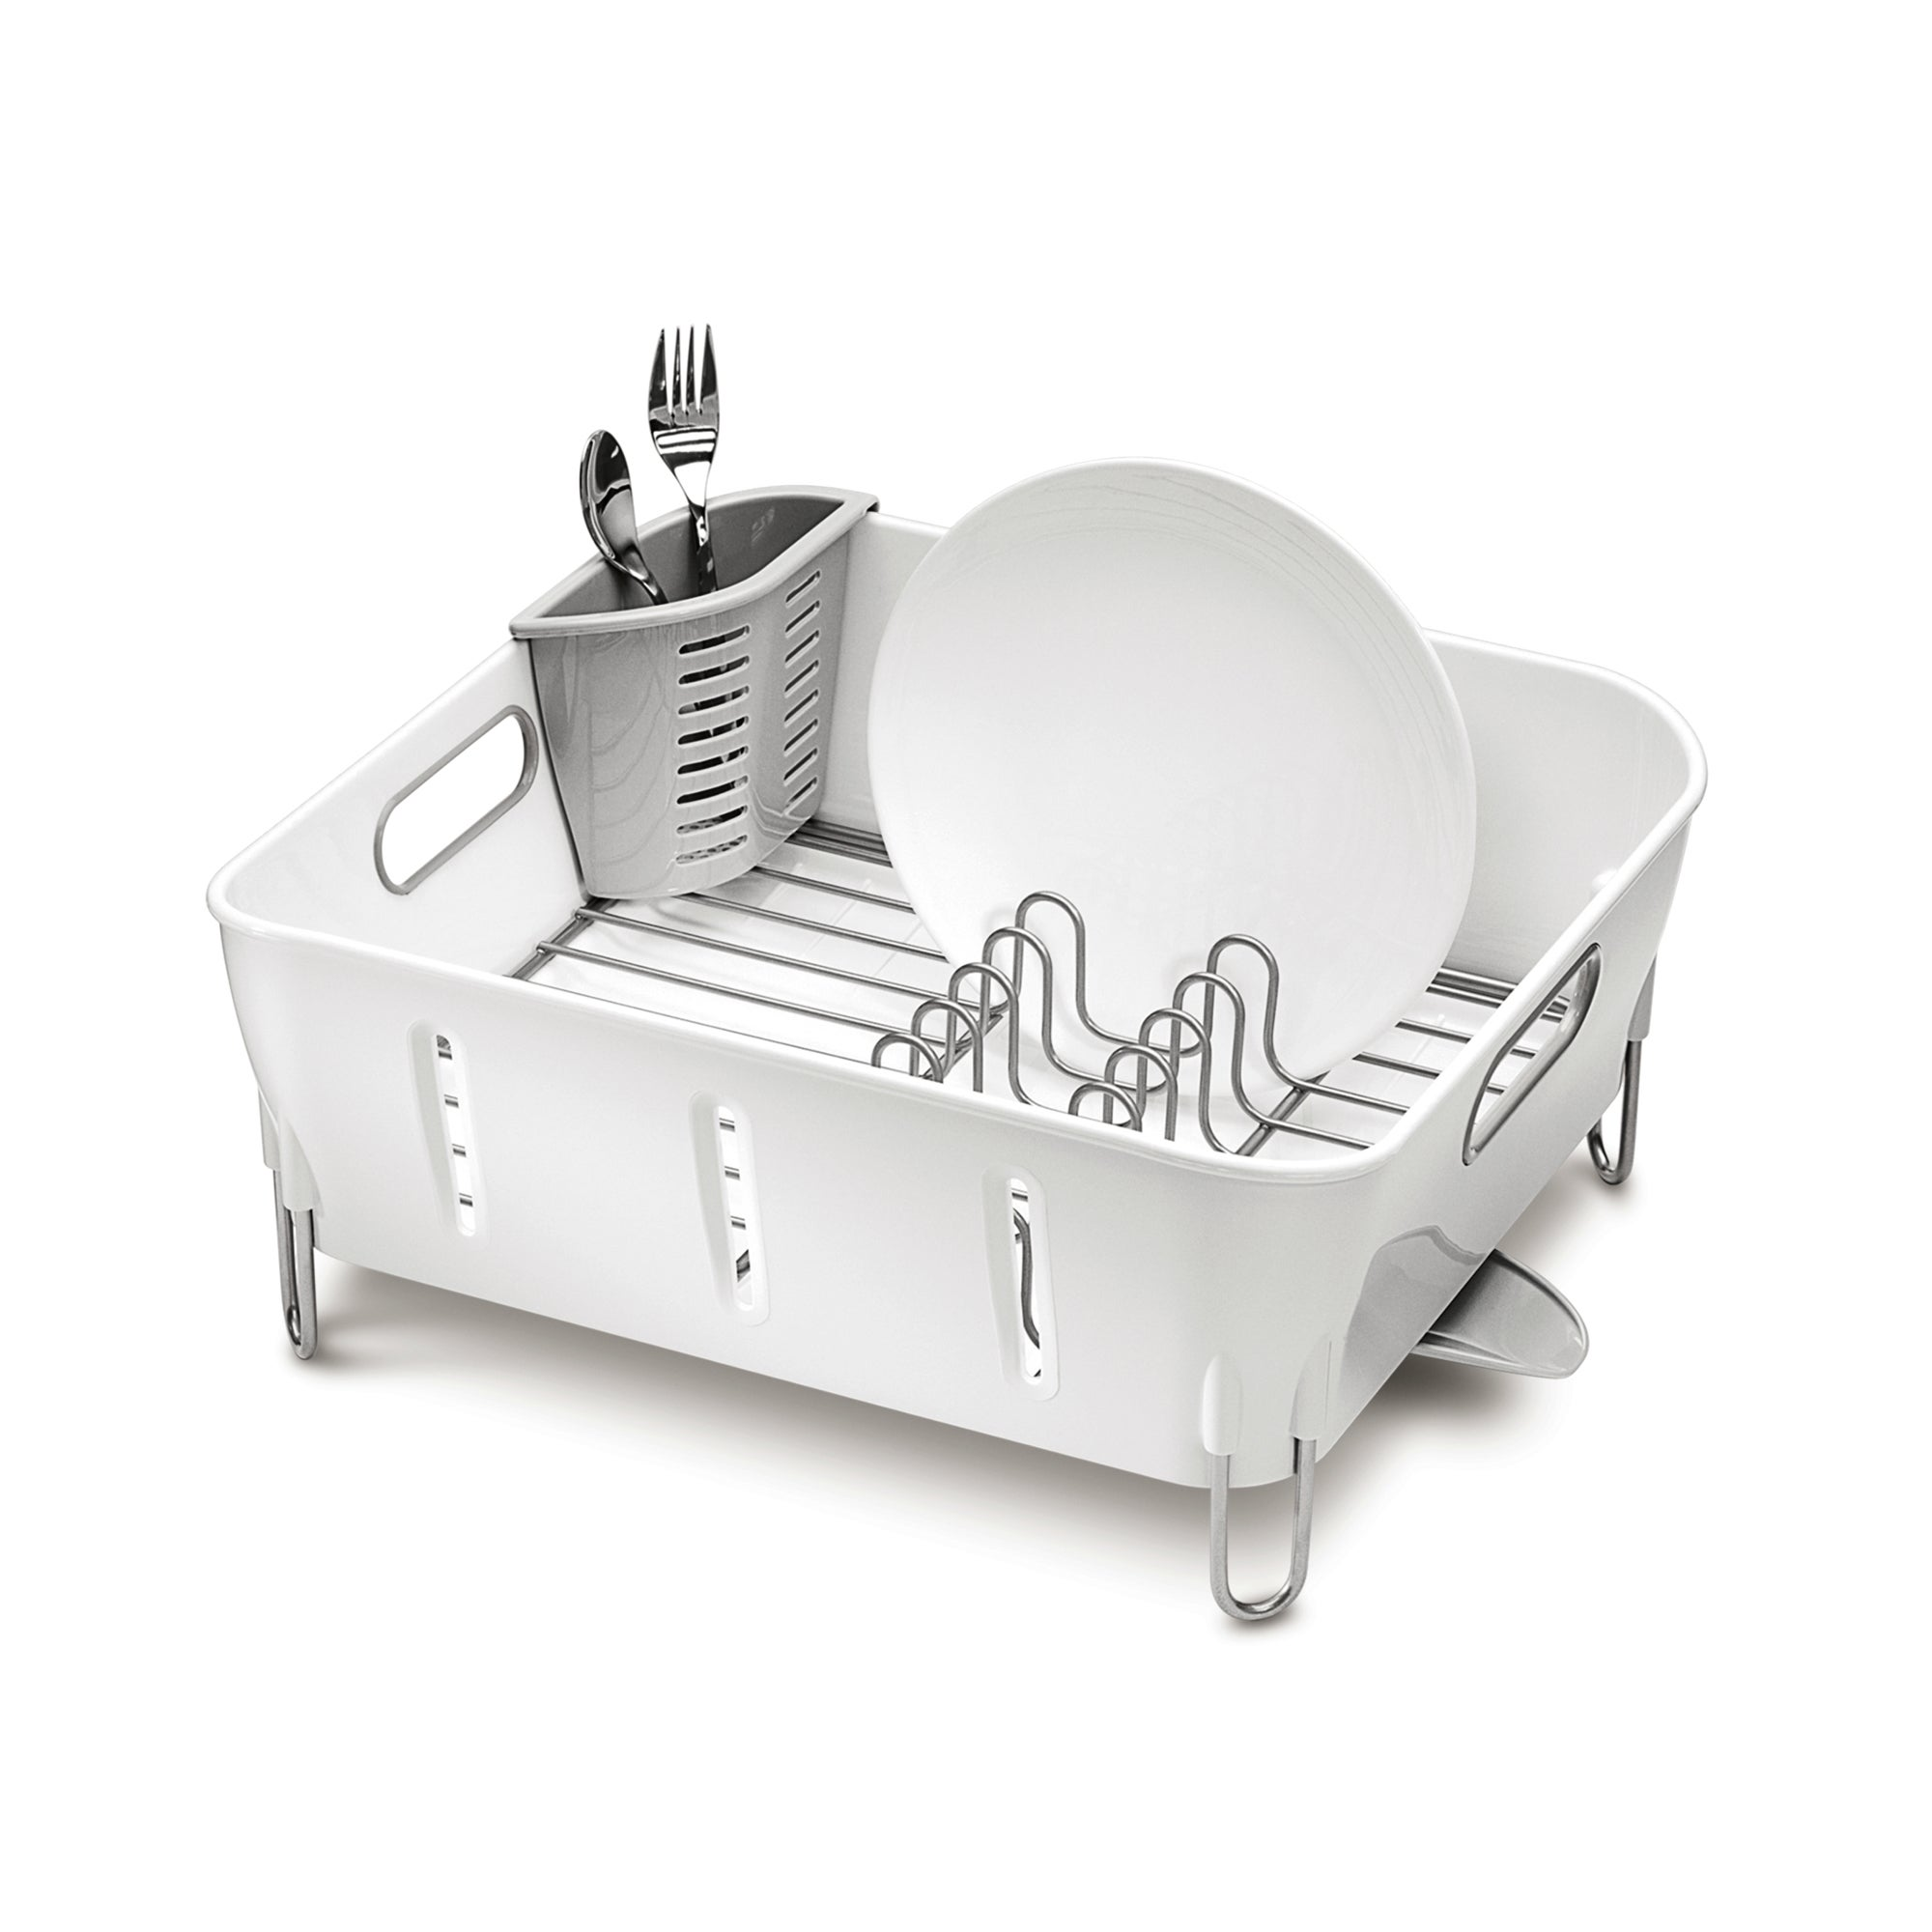 Photo of Simplehuman dish rack white